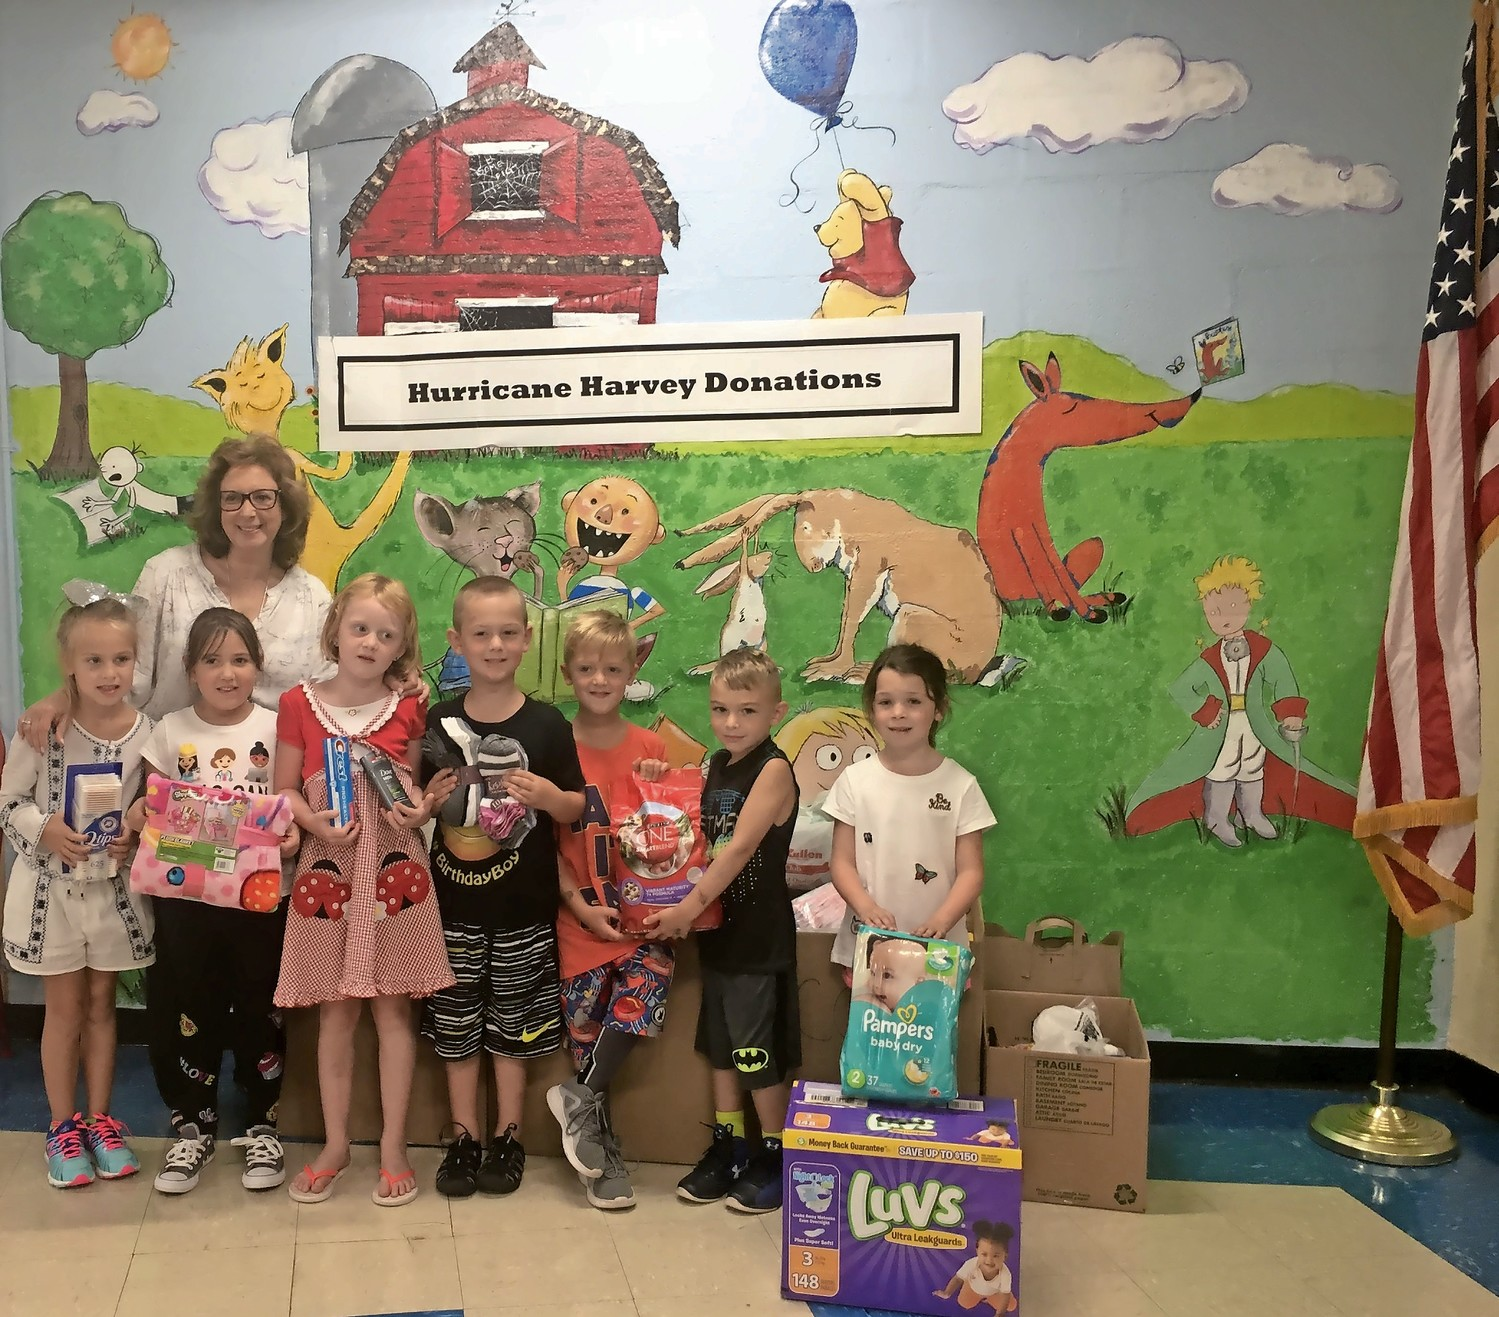 Cheryl Schwartz, back left, a first-grade teacher, conceptualized Mandalay Elementary School's Hurricane Harvey relief drive. Her students donated supplies, which were sent to storm victims.